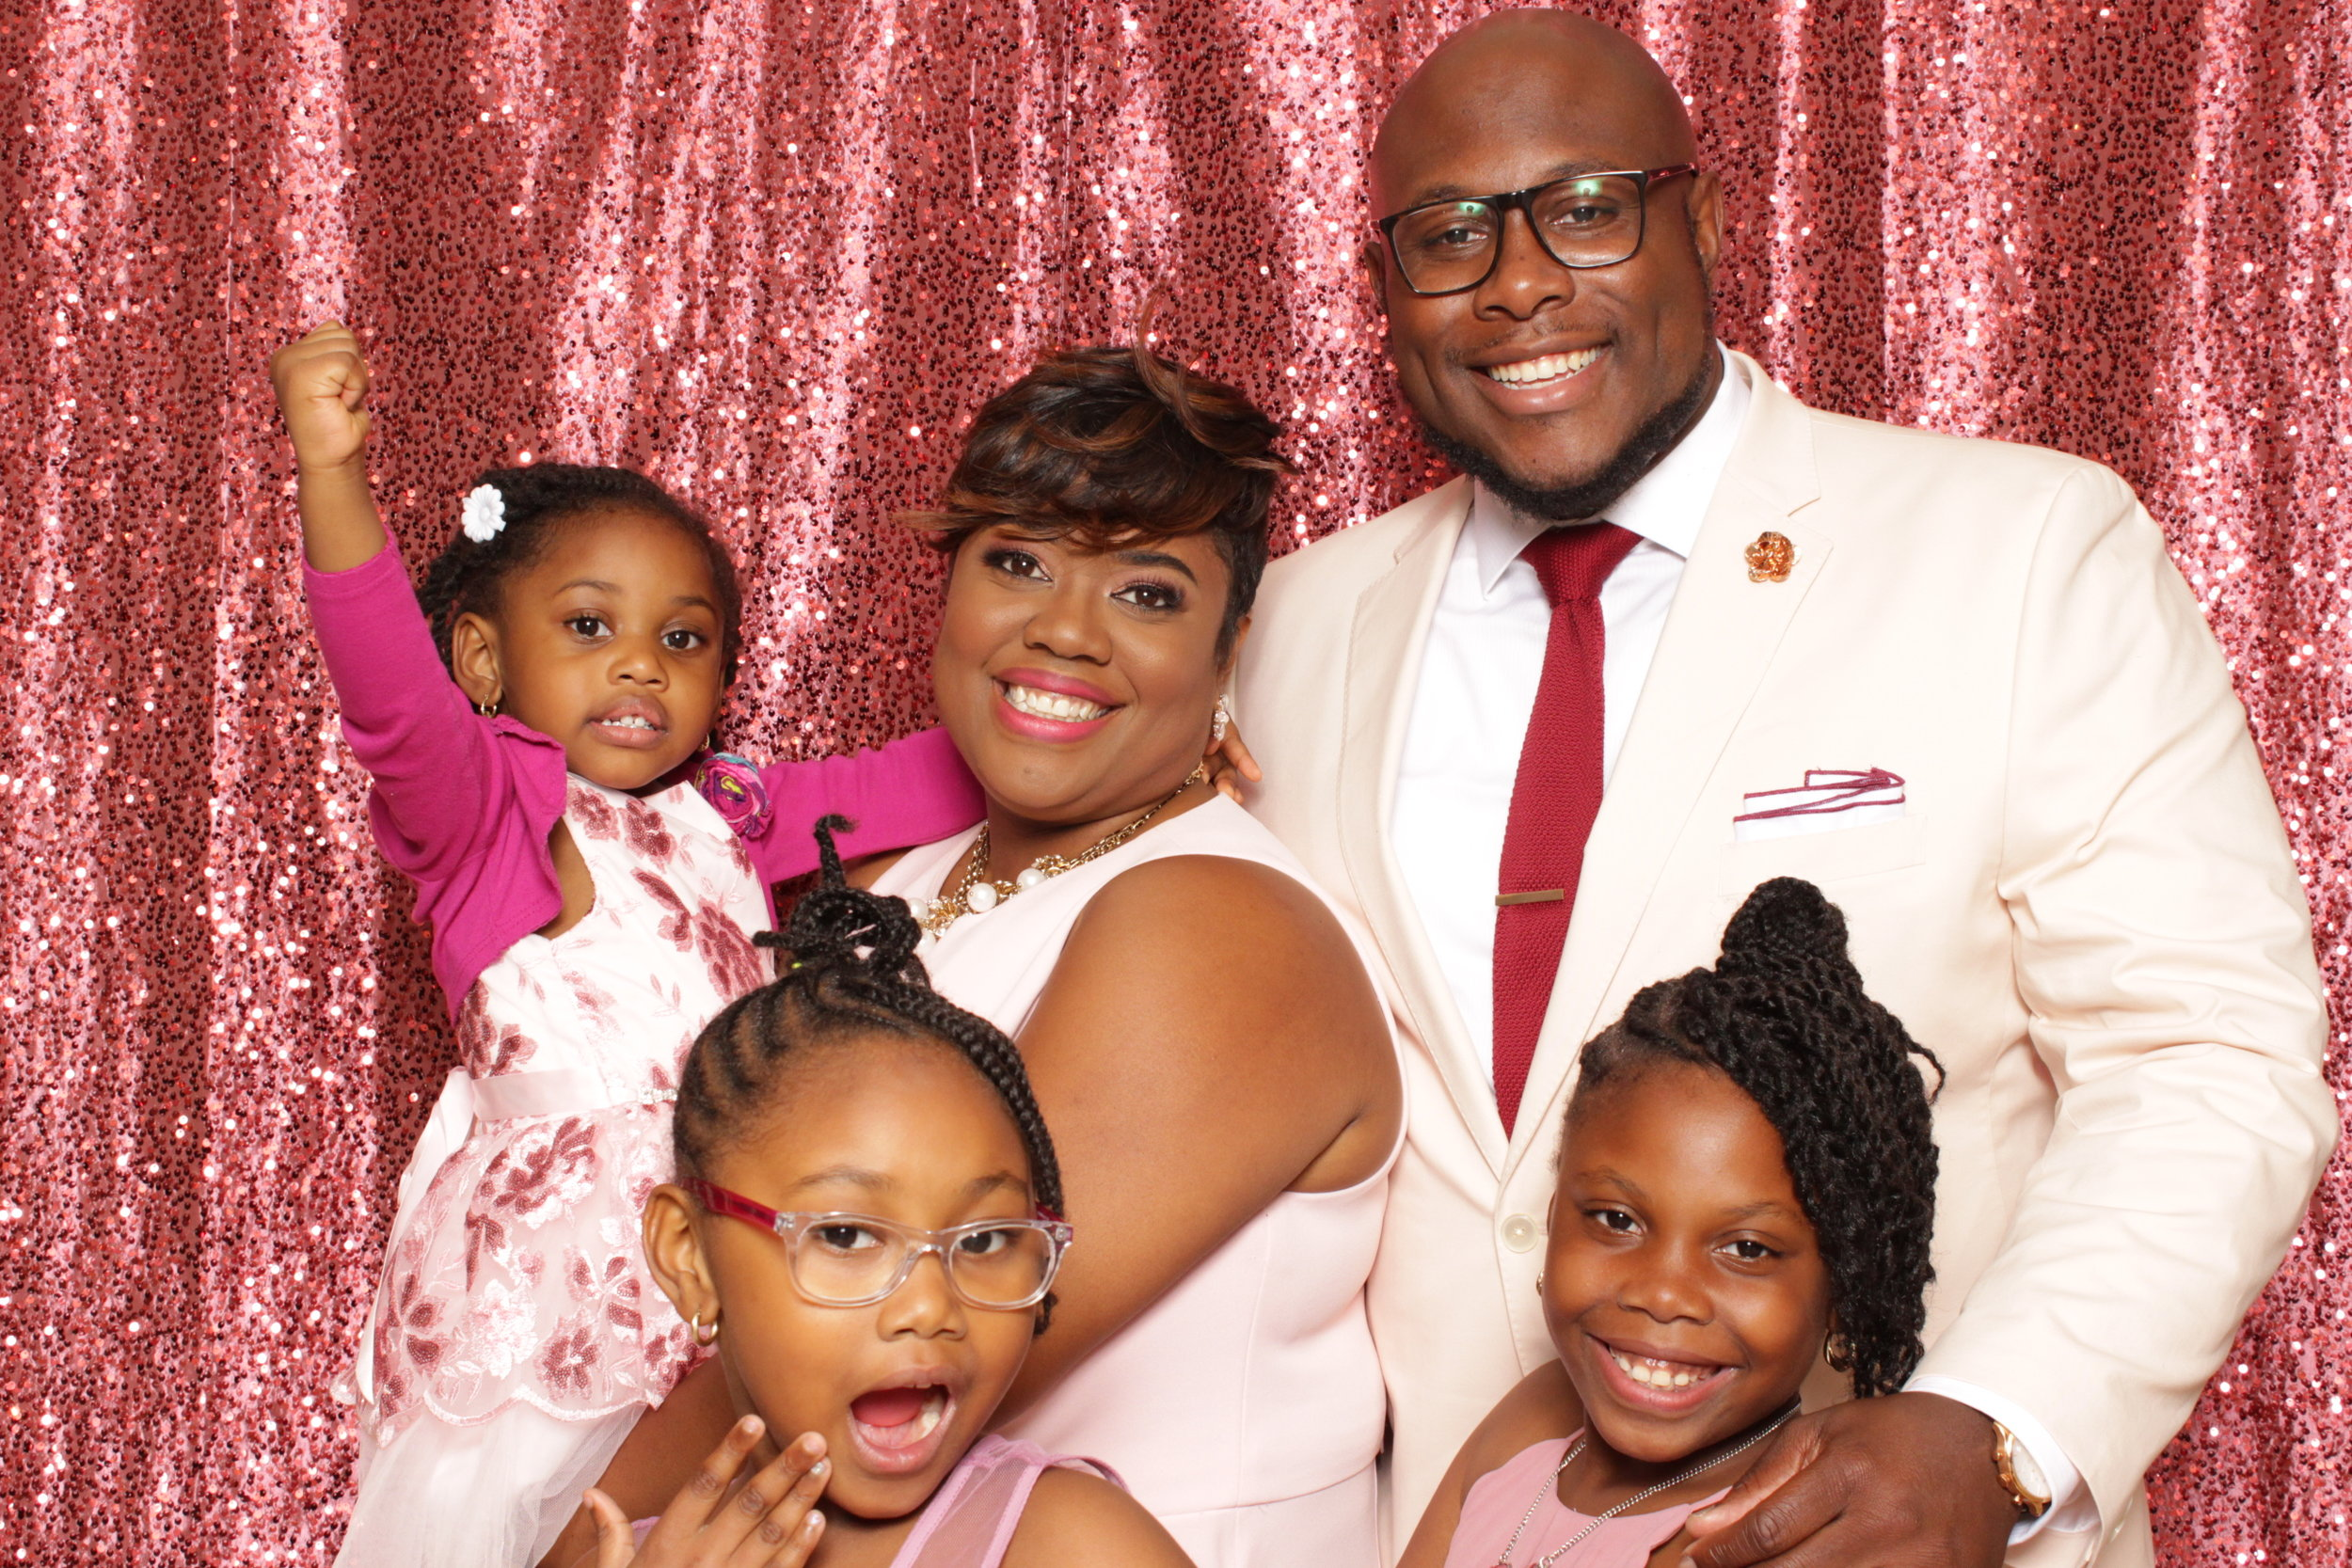 Jefferson-&-Cynthia-40th-Anniversary-JJ-Pixx-Photo-booth.jpg